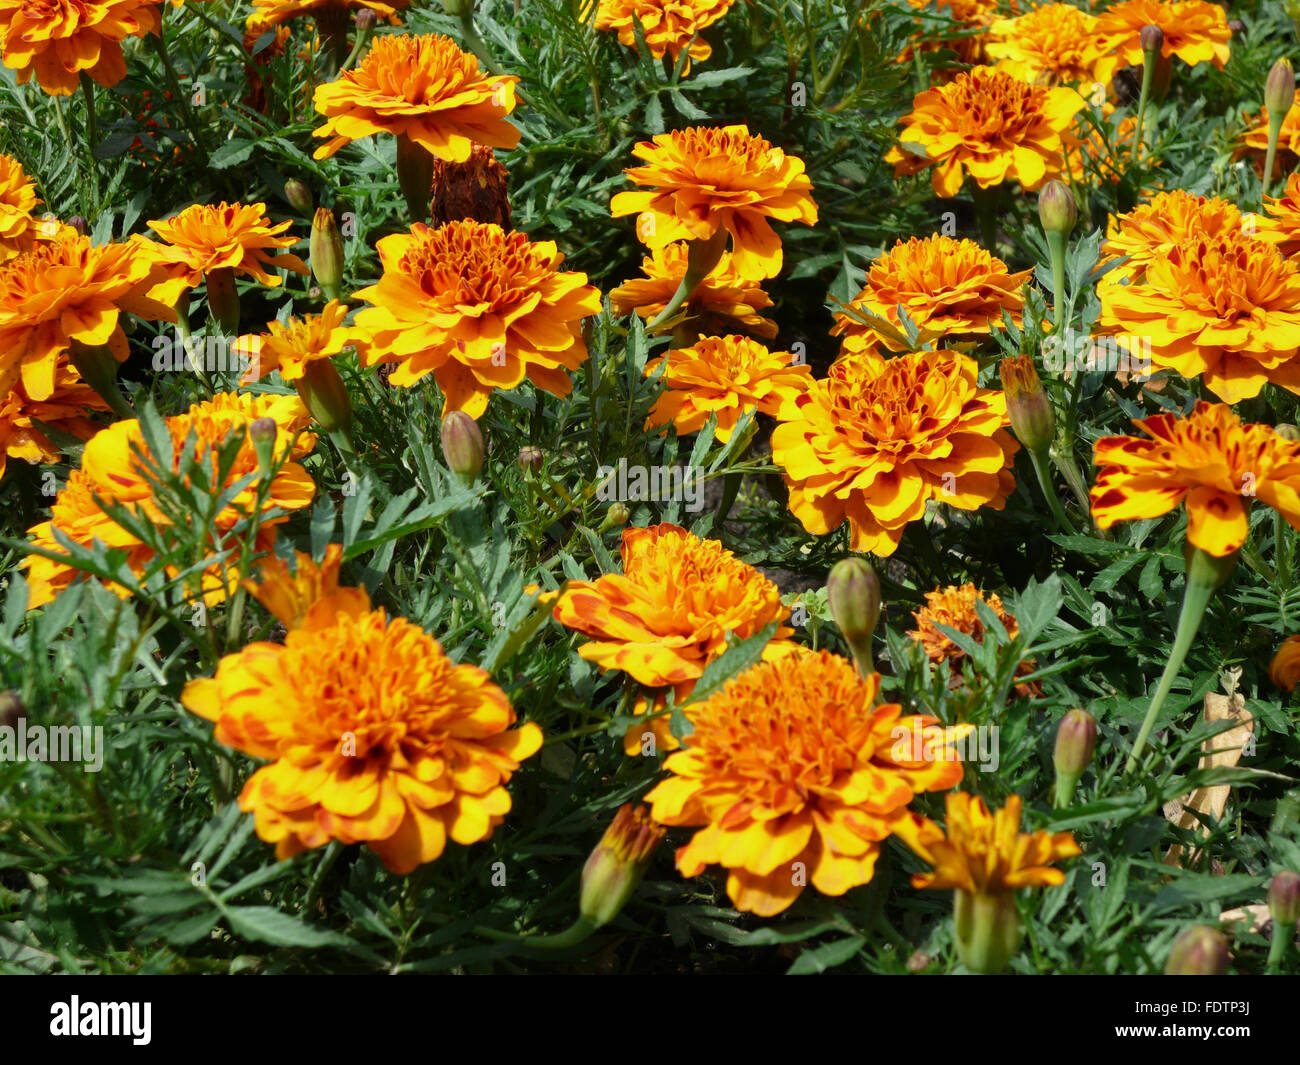 yellow flowers on flowerbed - Stock Image